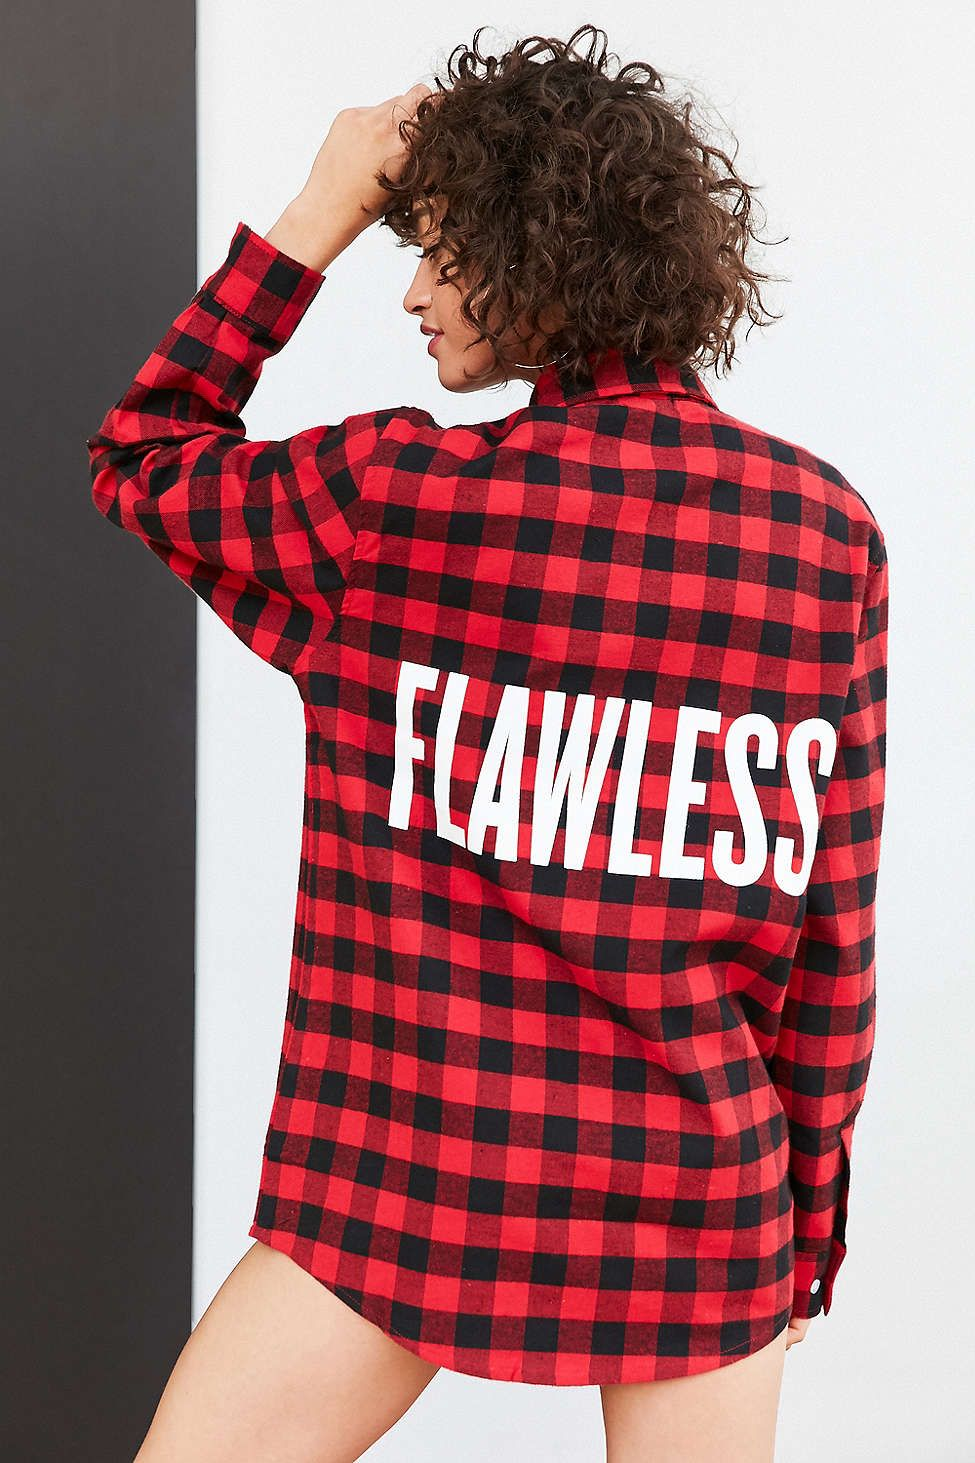 ac3ed99b11fe4 Beyonce Flawless Buffalo Check Flannel Shirt - Urban Outfitters ...